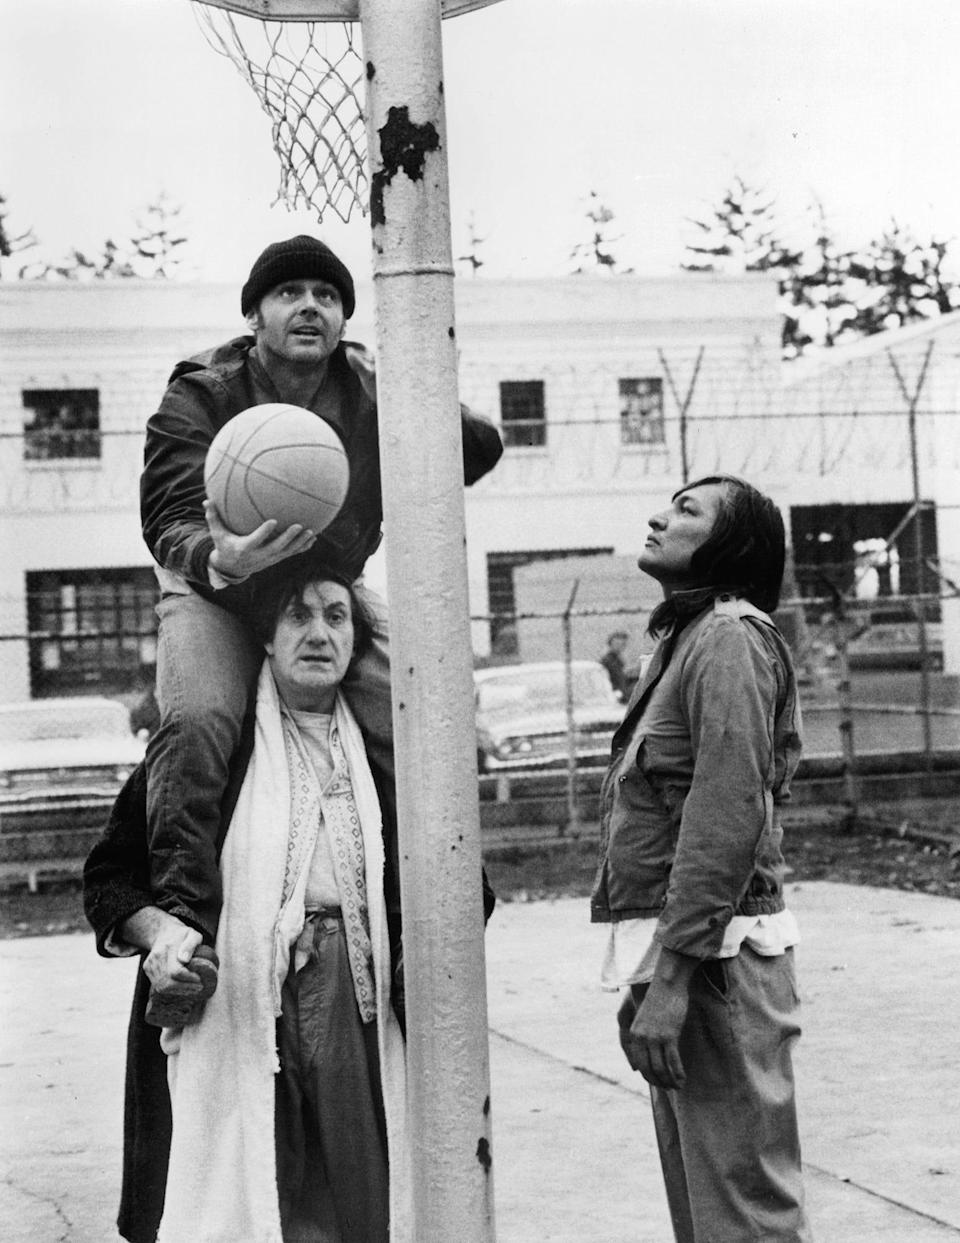 Jack Nicholson shooting basket on the shoulders of Josip Elic as Will Sampson watches in a scene from the film 'One Flew Over The Cuckoo's Nest', 1975.